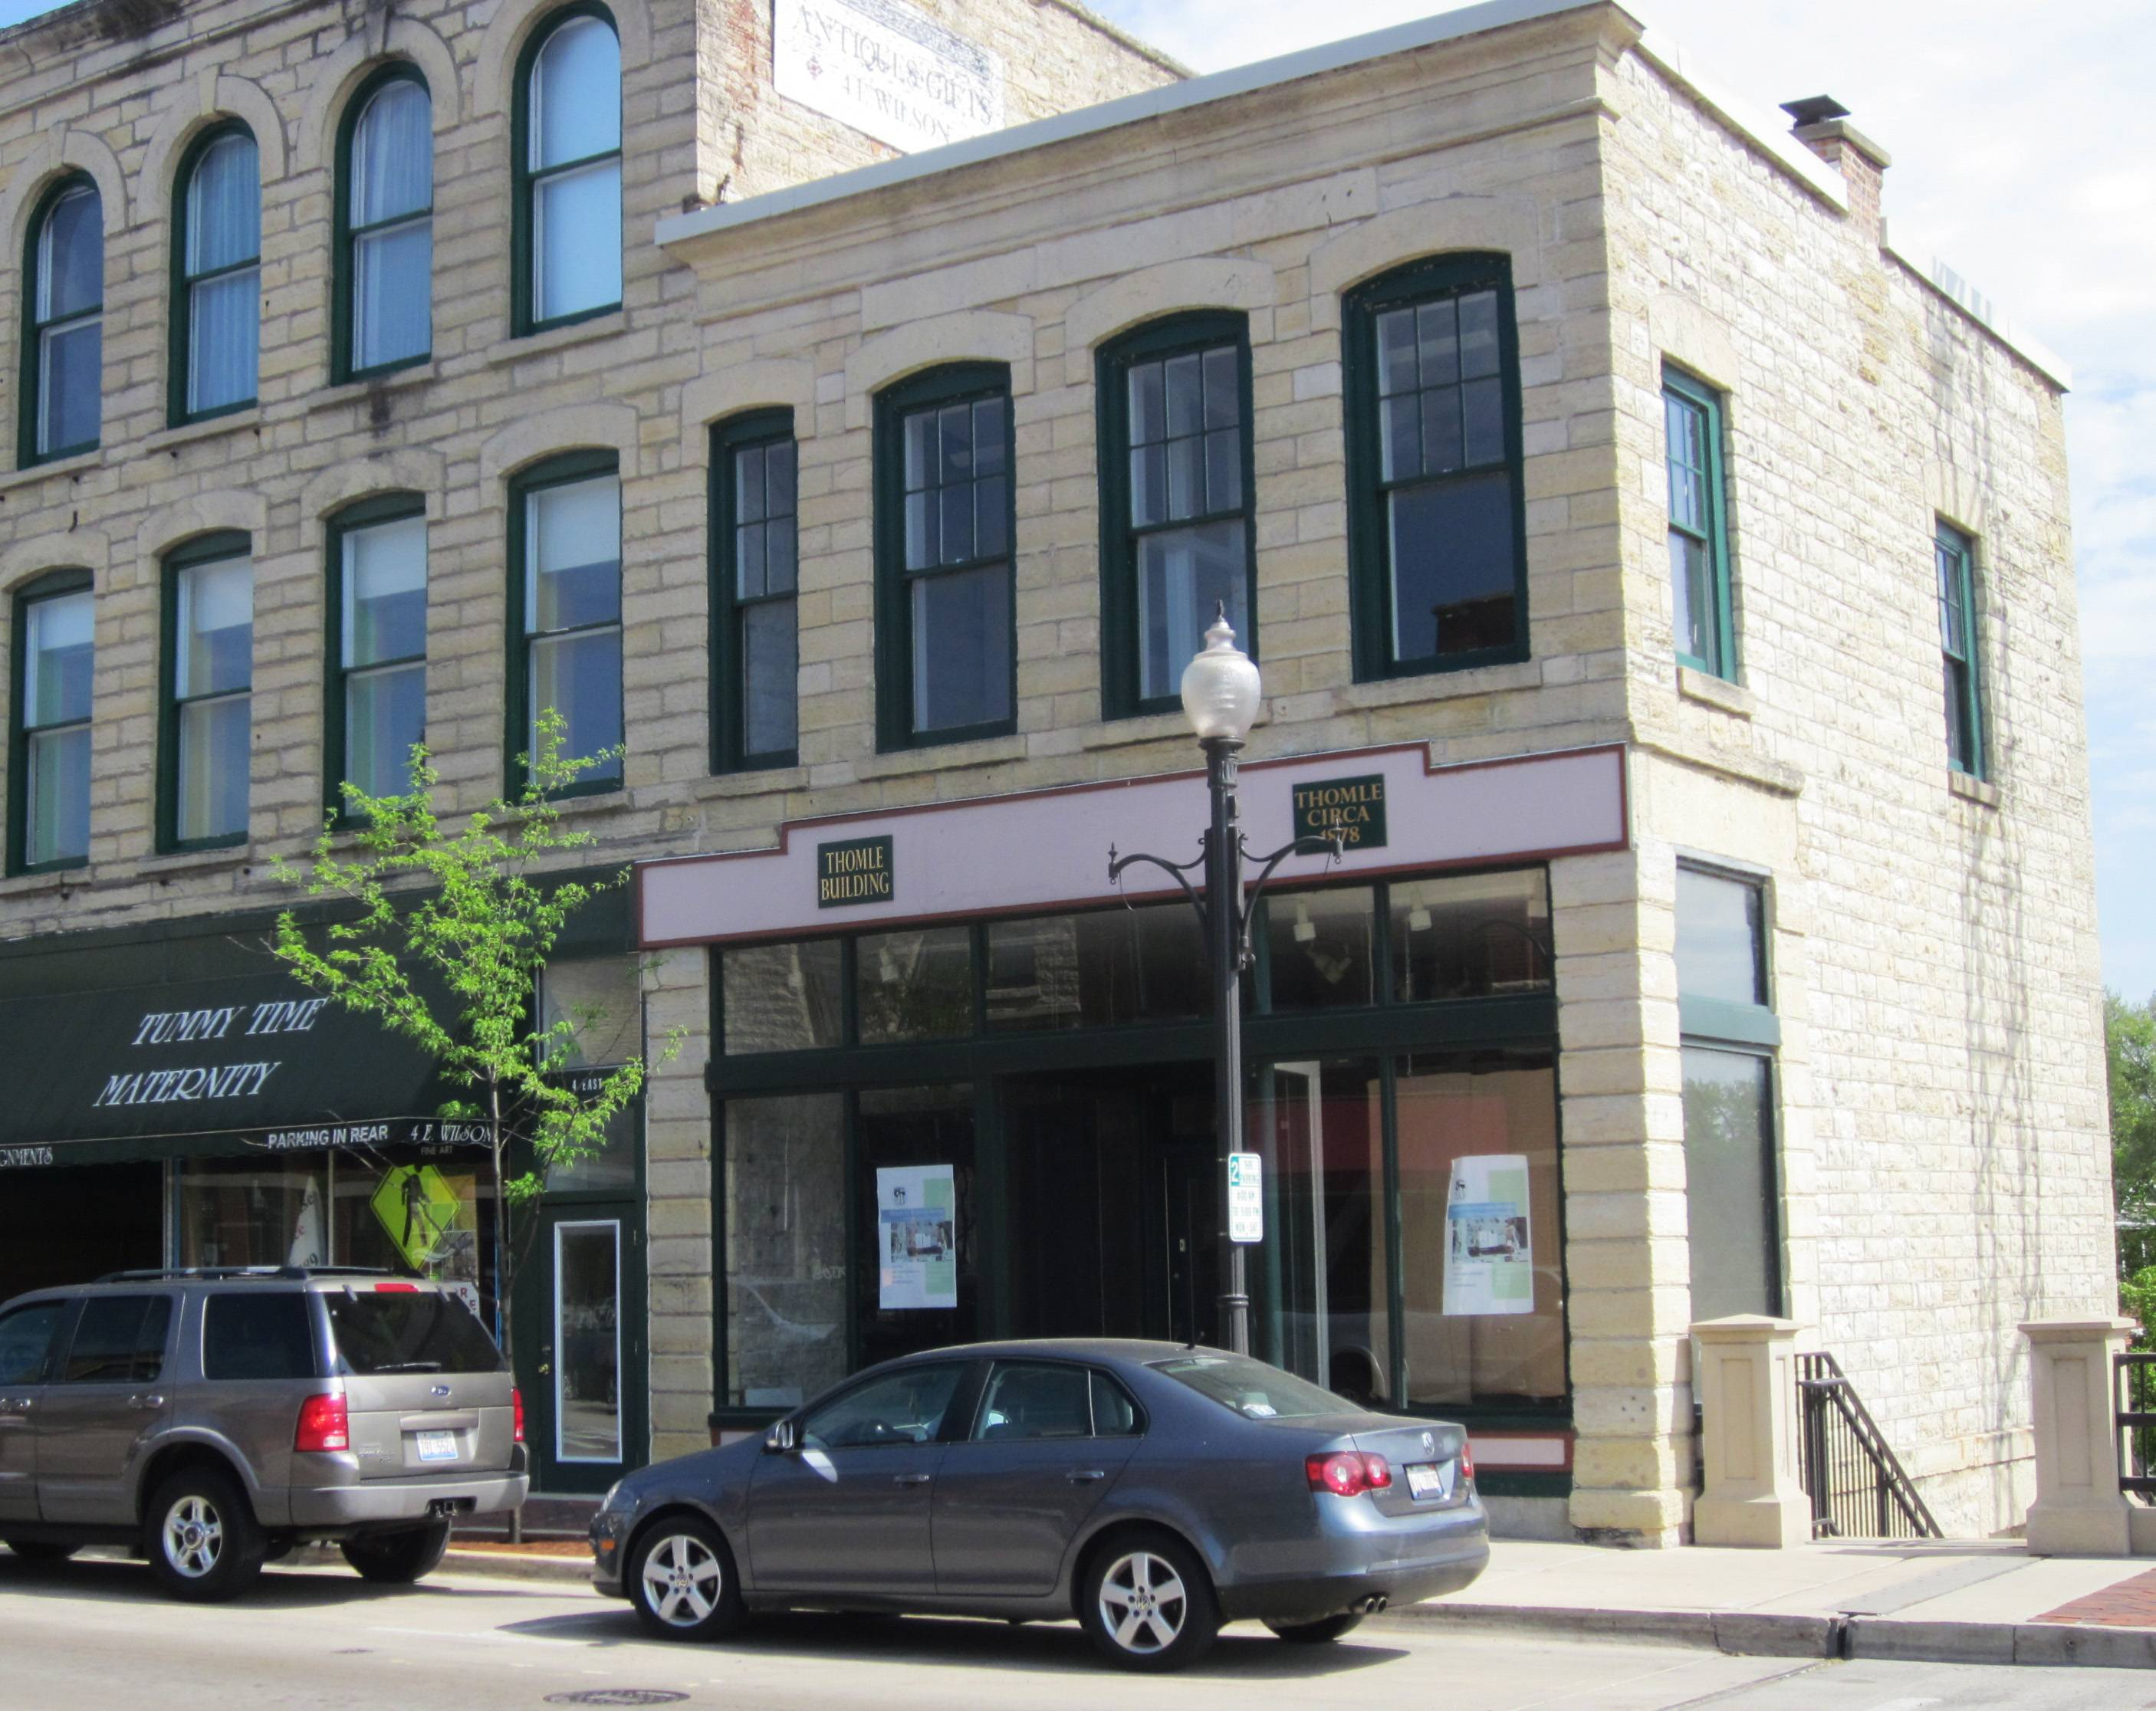 A proposal to buy the Thomle Building at 2 E. Wilson St. from the city of Batavia has fallen through.